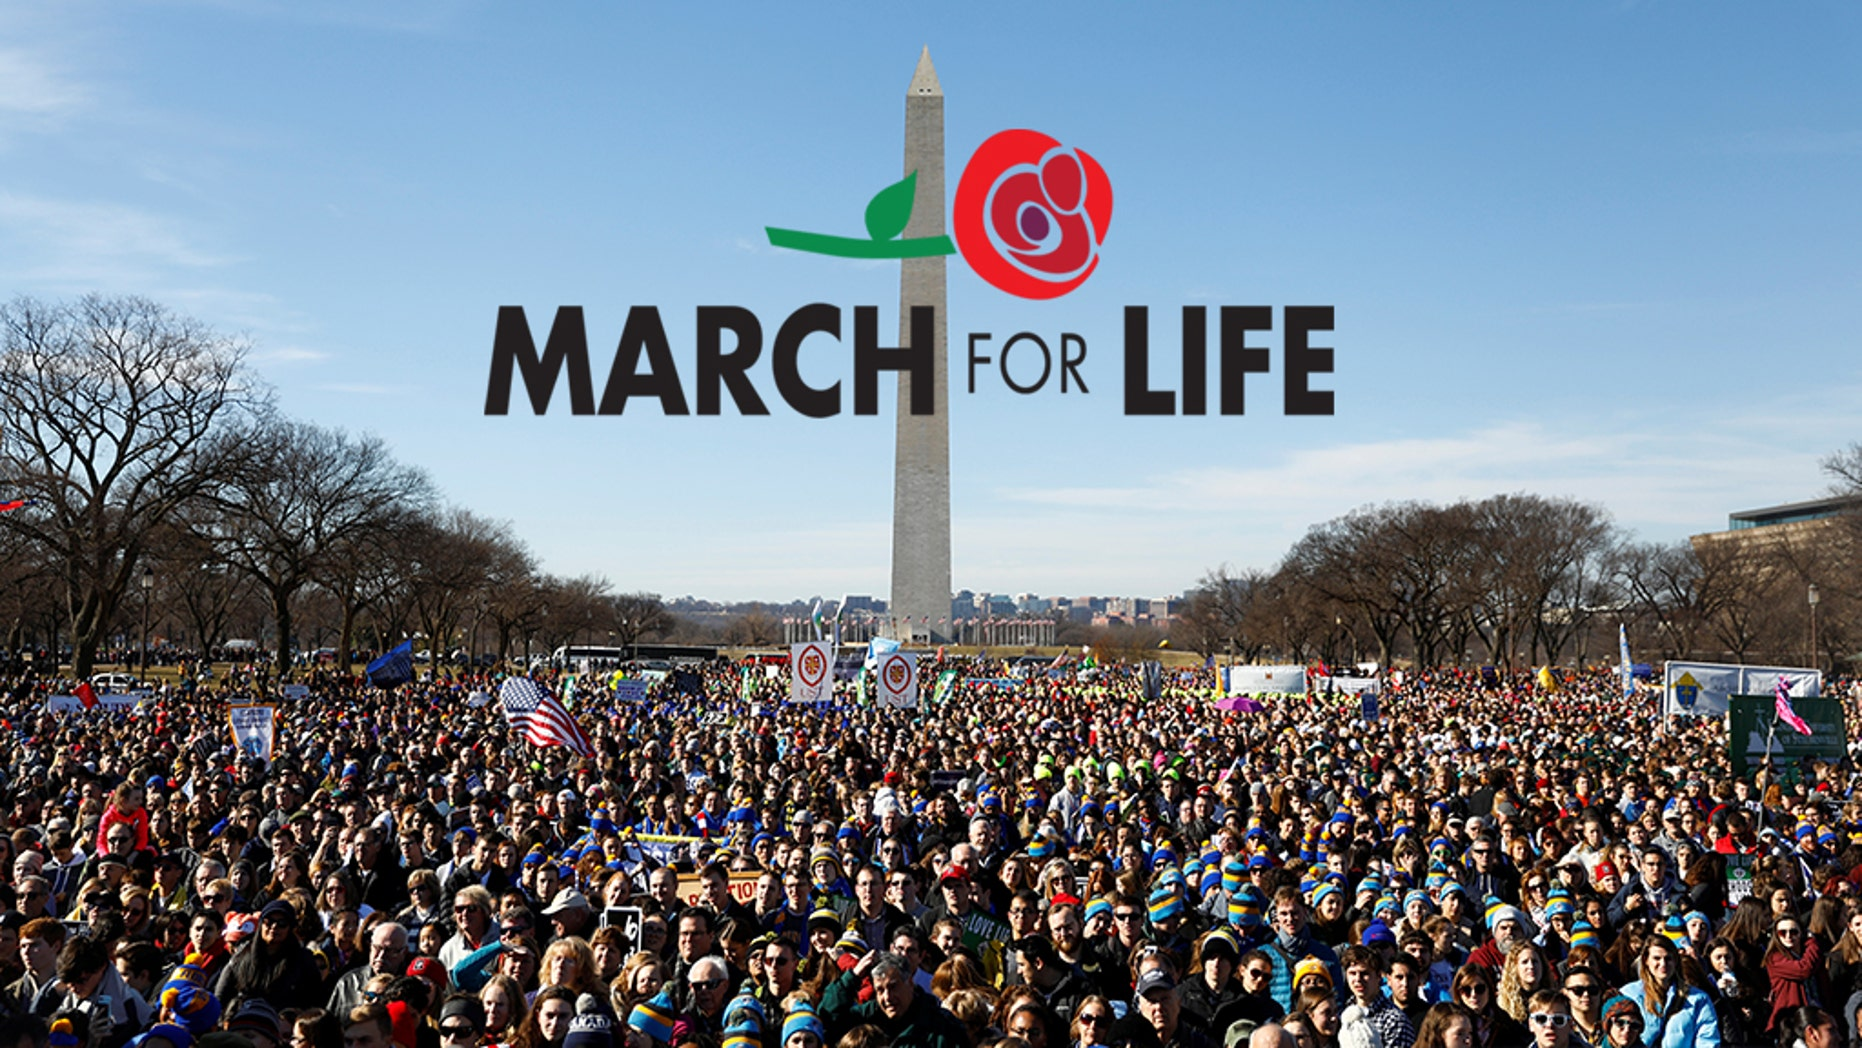 Participants attend the annual March for Life anti-abortion rally in front of the Washington Monument in Washington, D.C. January 19, 2018.